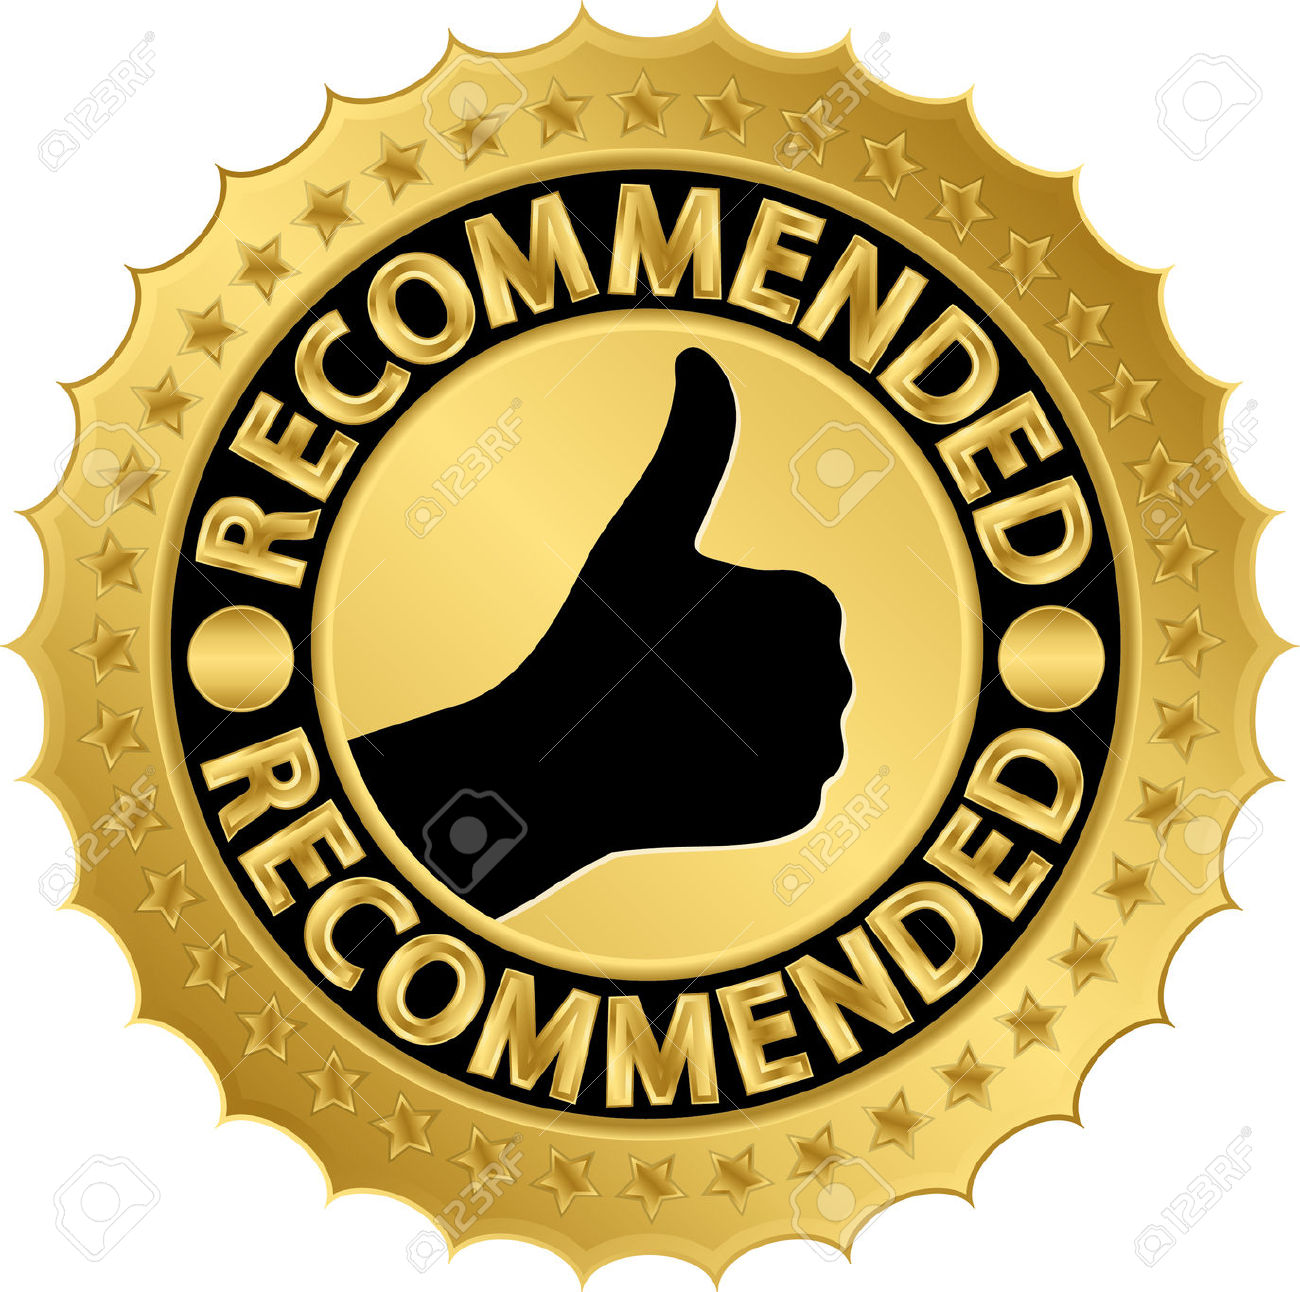 Recommends clipart.